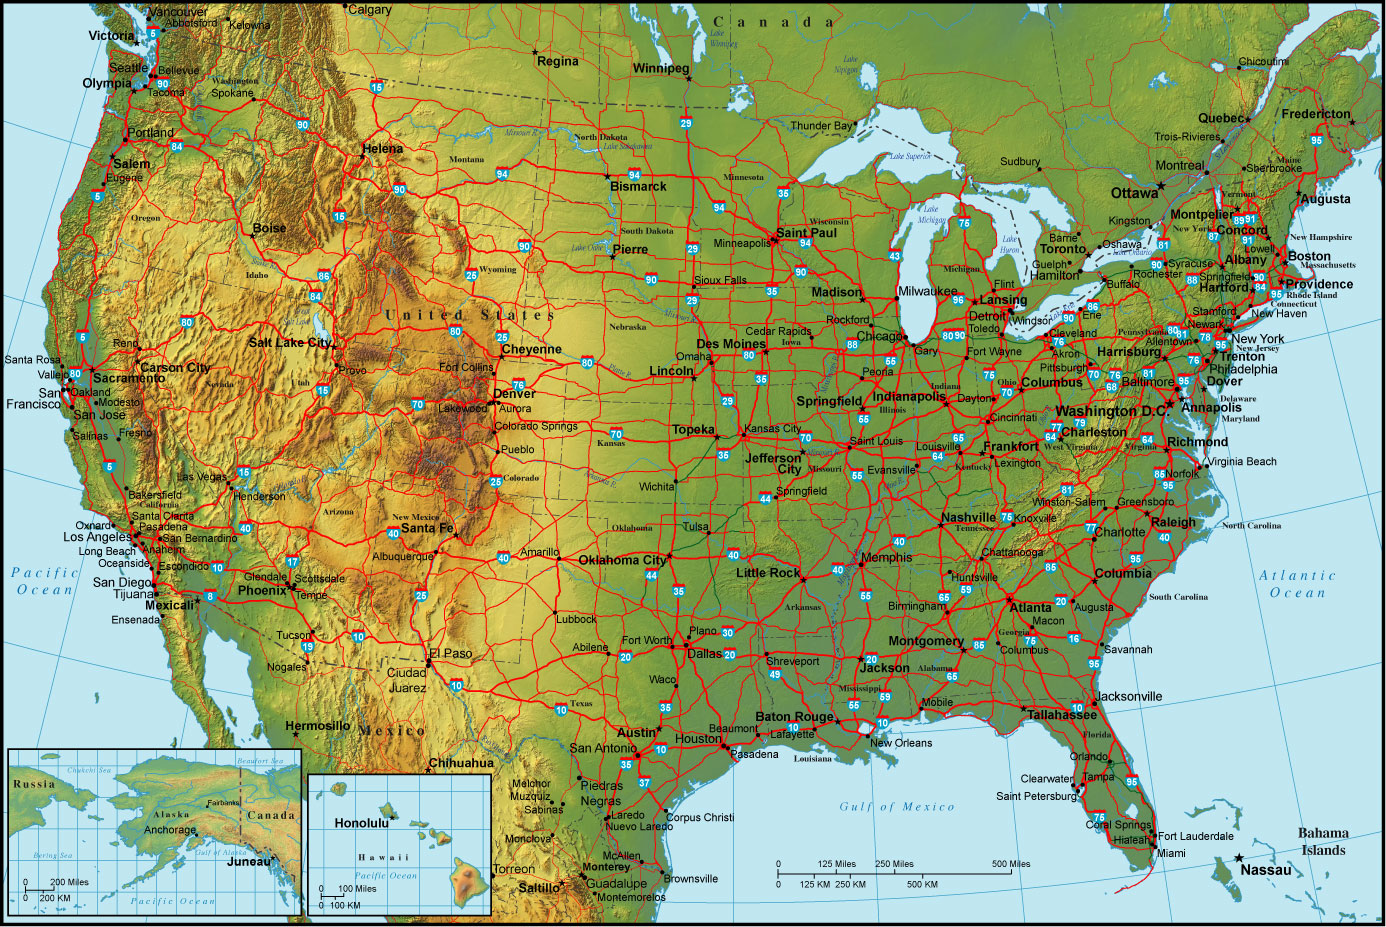 United States Map gt; Large Map of United States